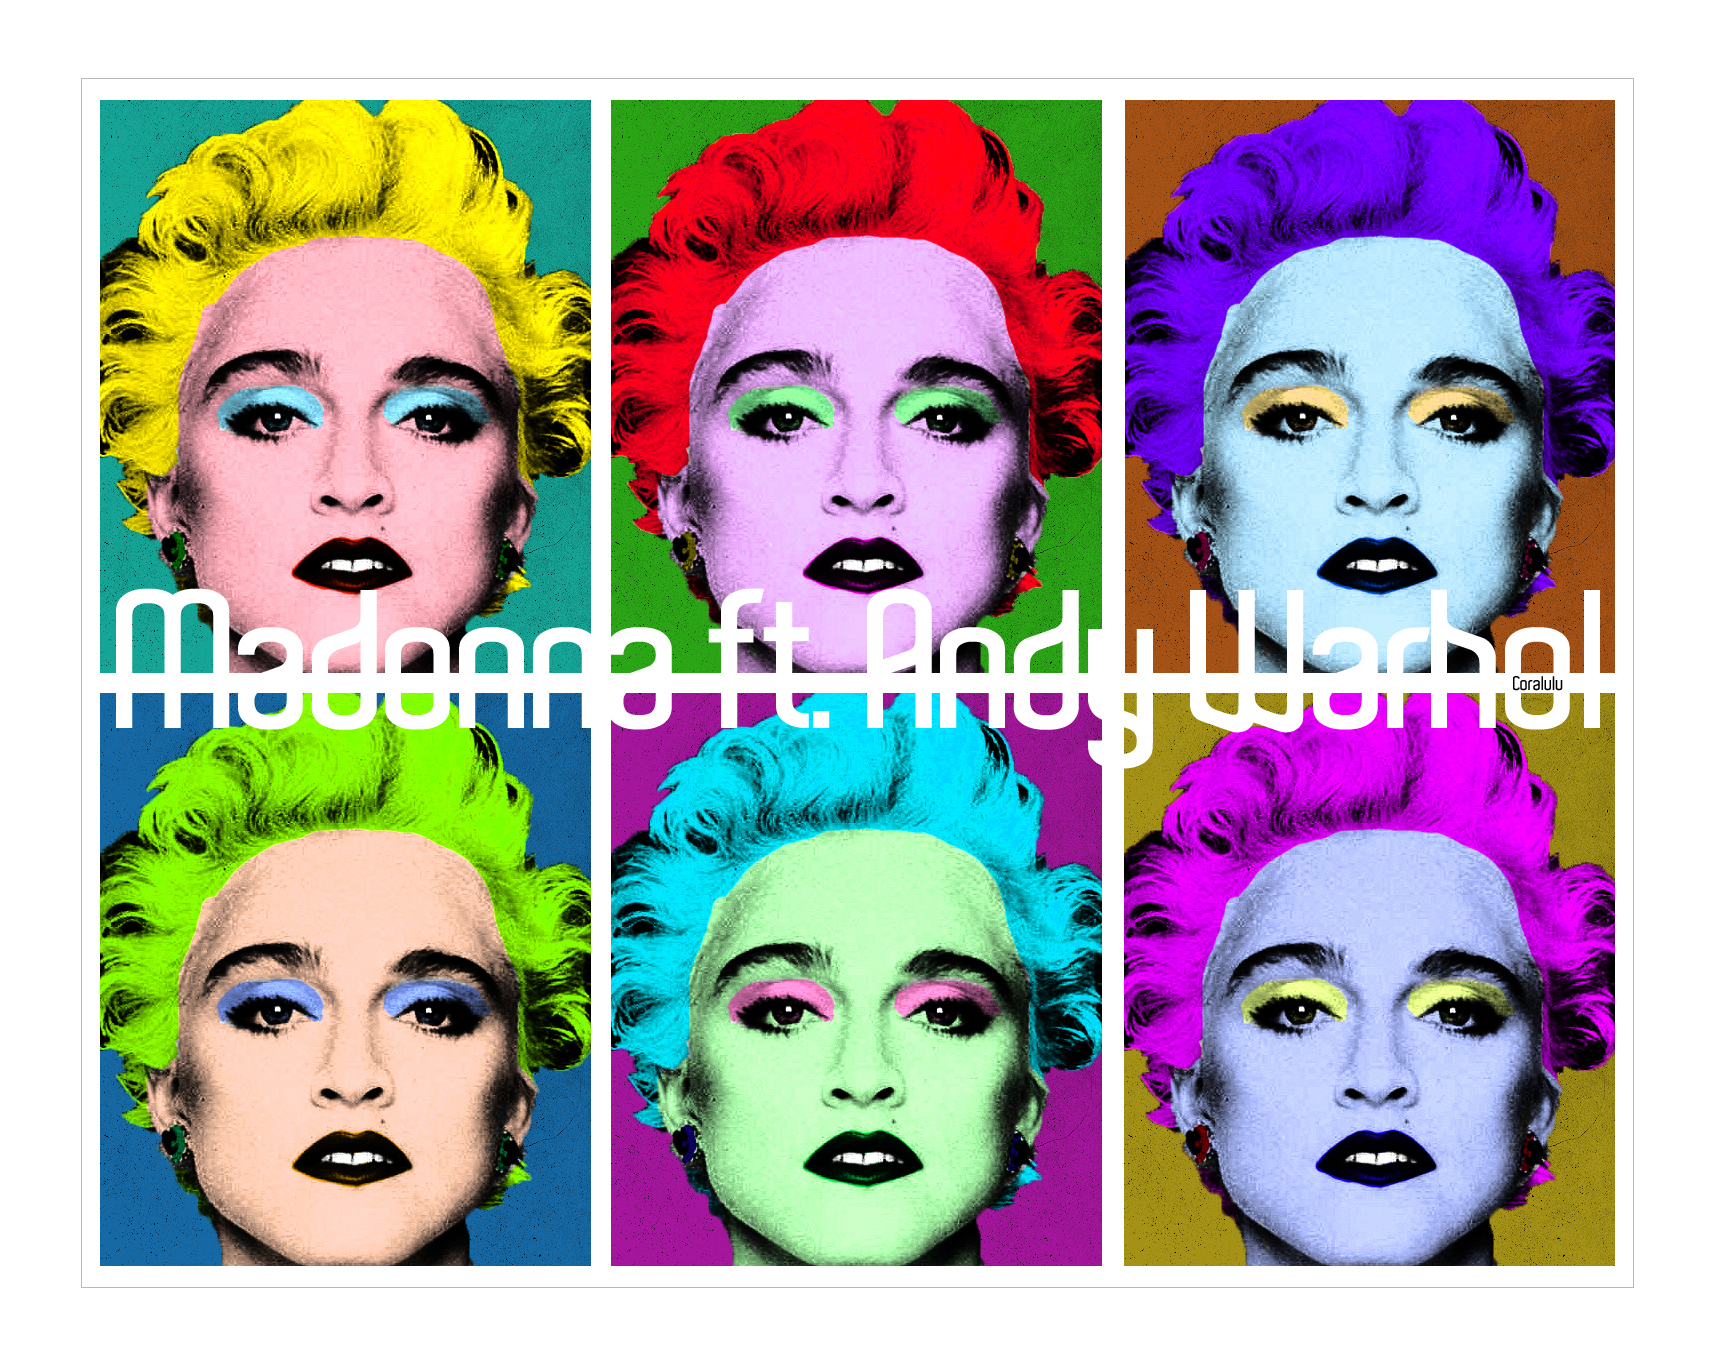 Bello Madonna_ft__Andy_Warhol_by_Coralulu